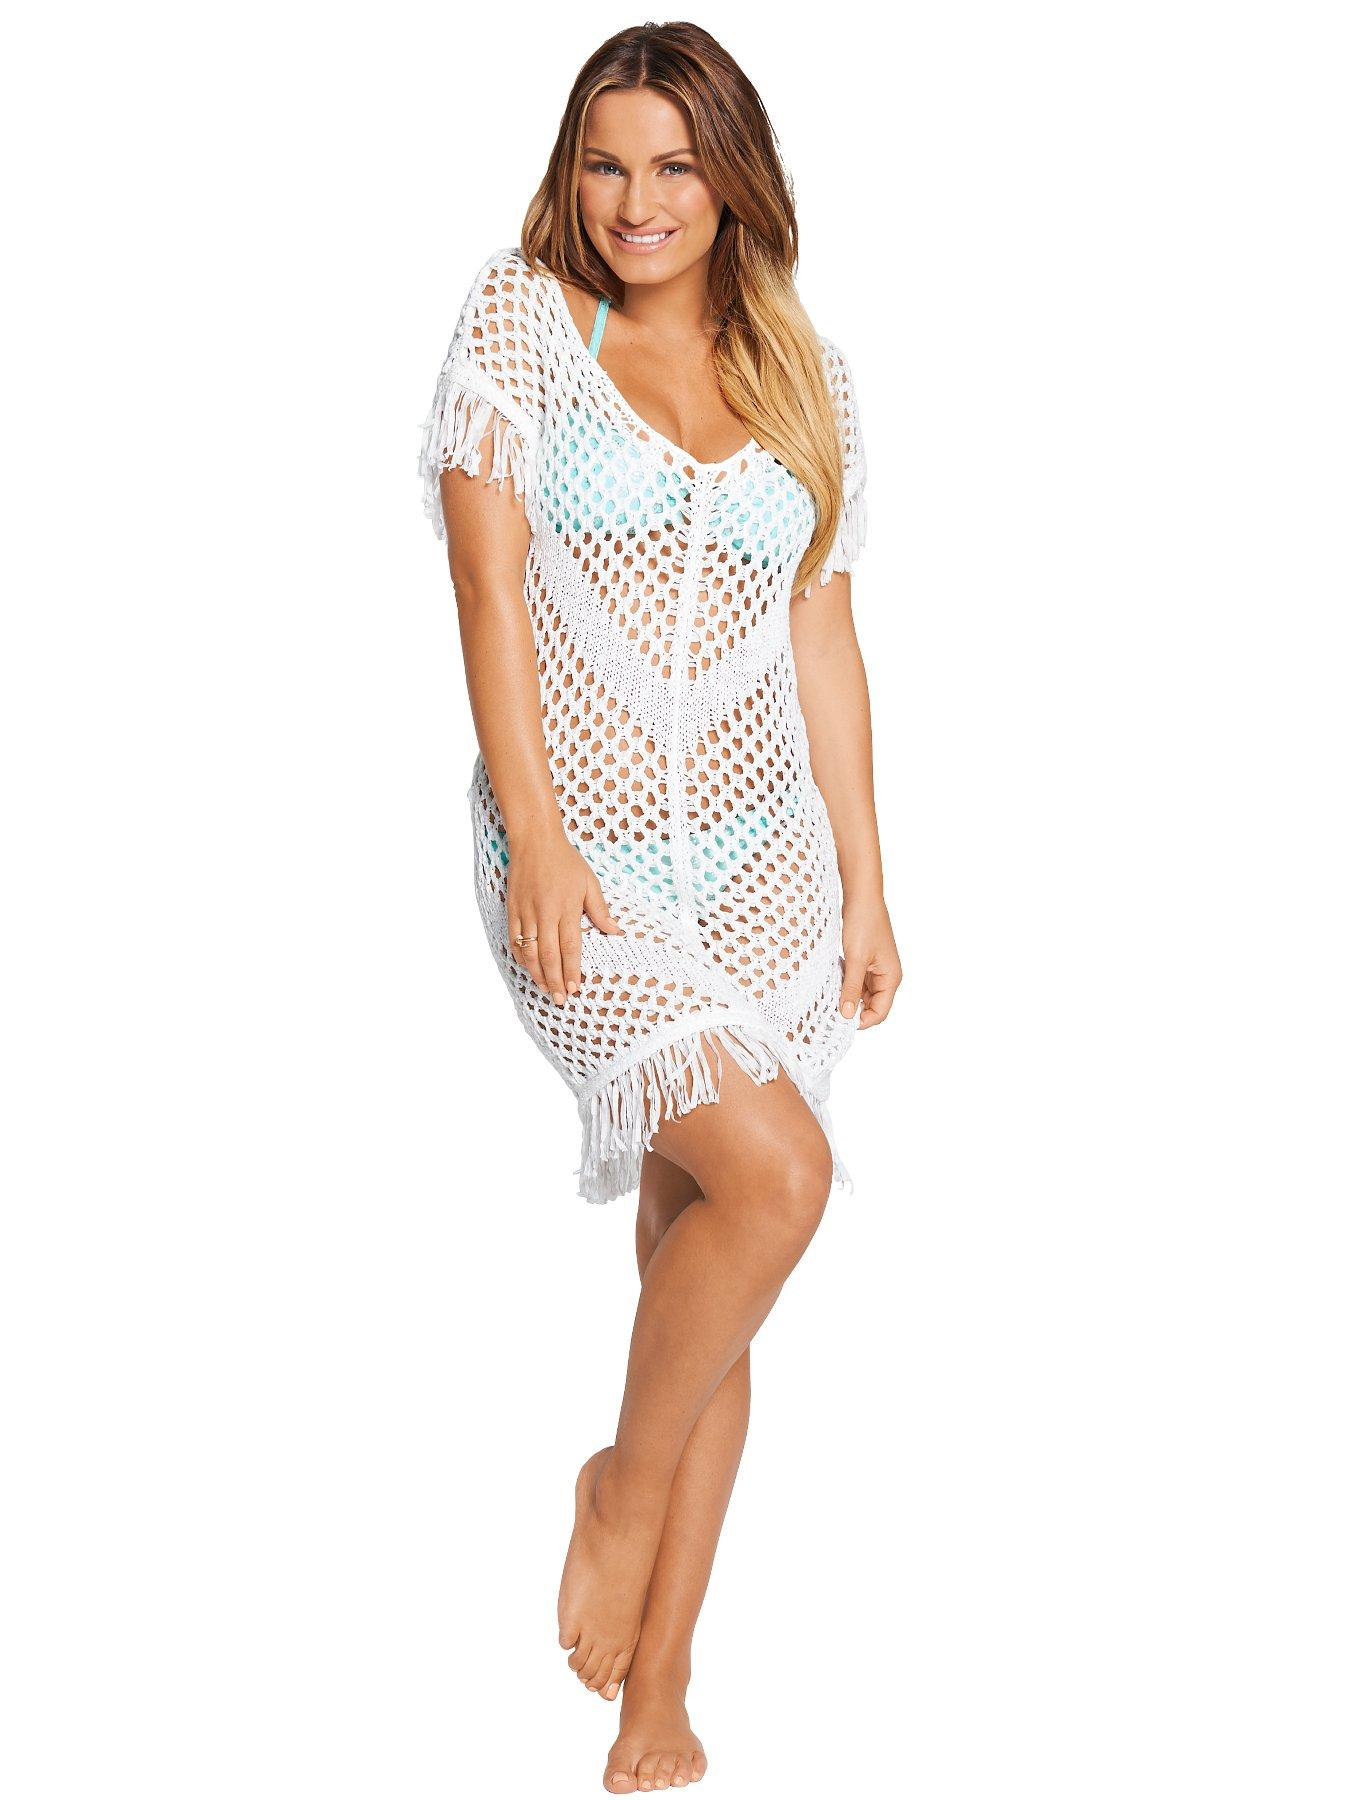 Samantha Faiers Crochet Tassle Beach Dress